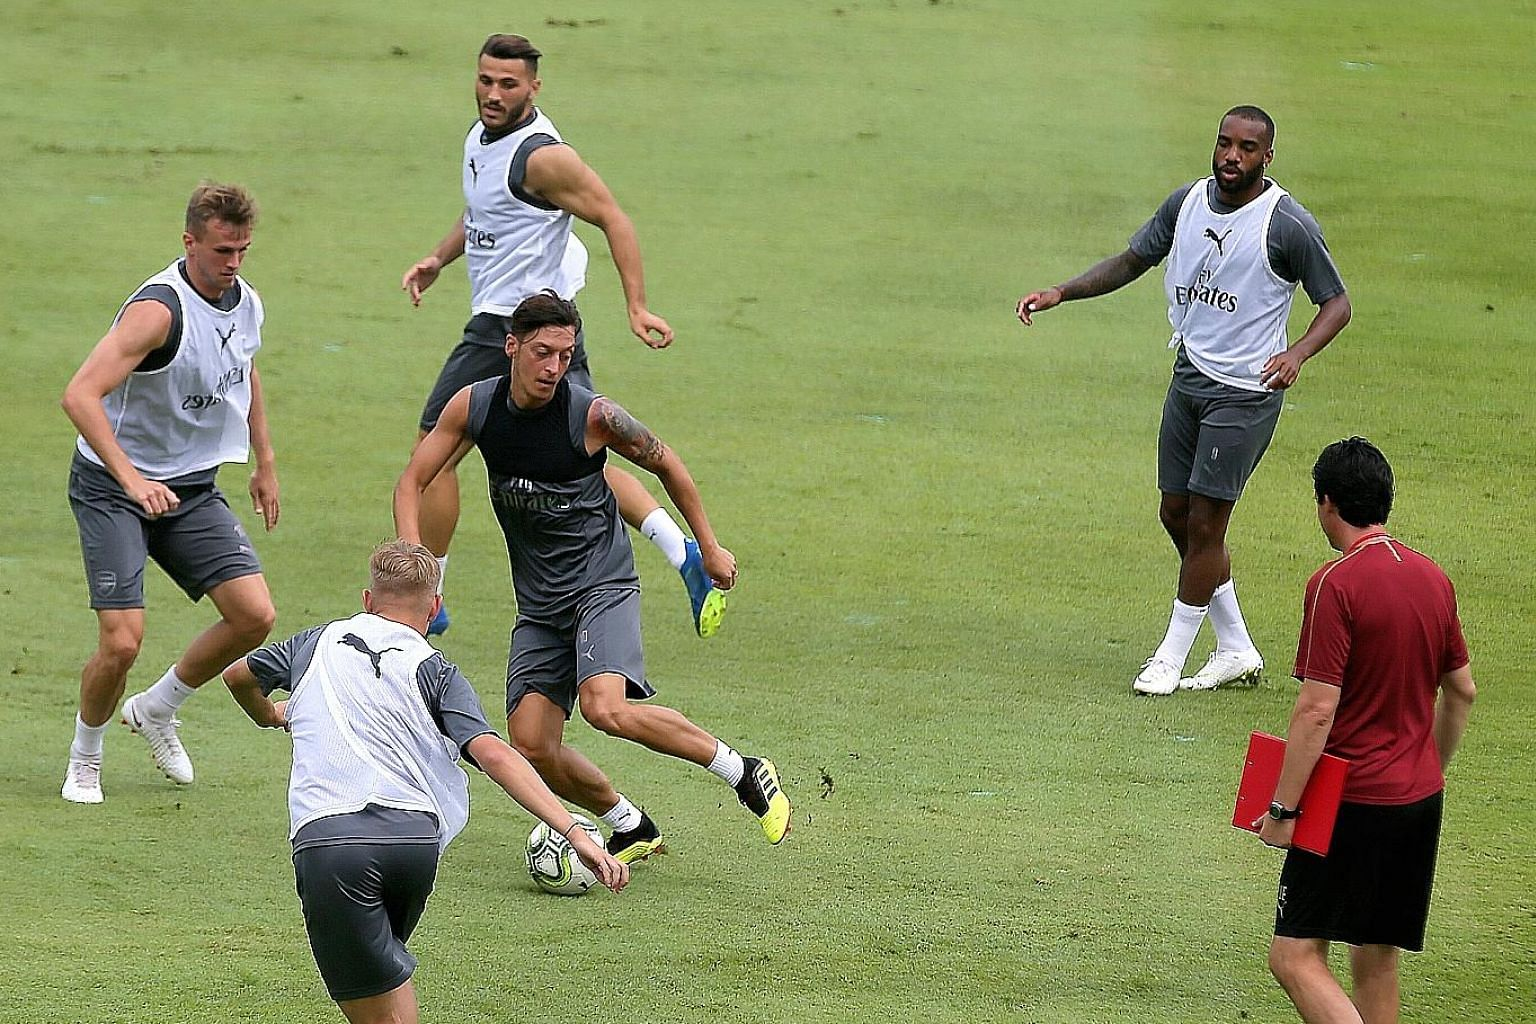 Wherever he goes, Mesut Ozil, on the ball, is usually the centre of attention. He and the Arsenal team trained yesterday at the Singapore American School ahead of their International Champions Cup match tonight against Atletico Madrid at the National